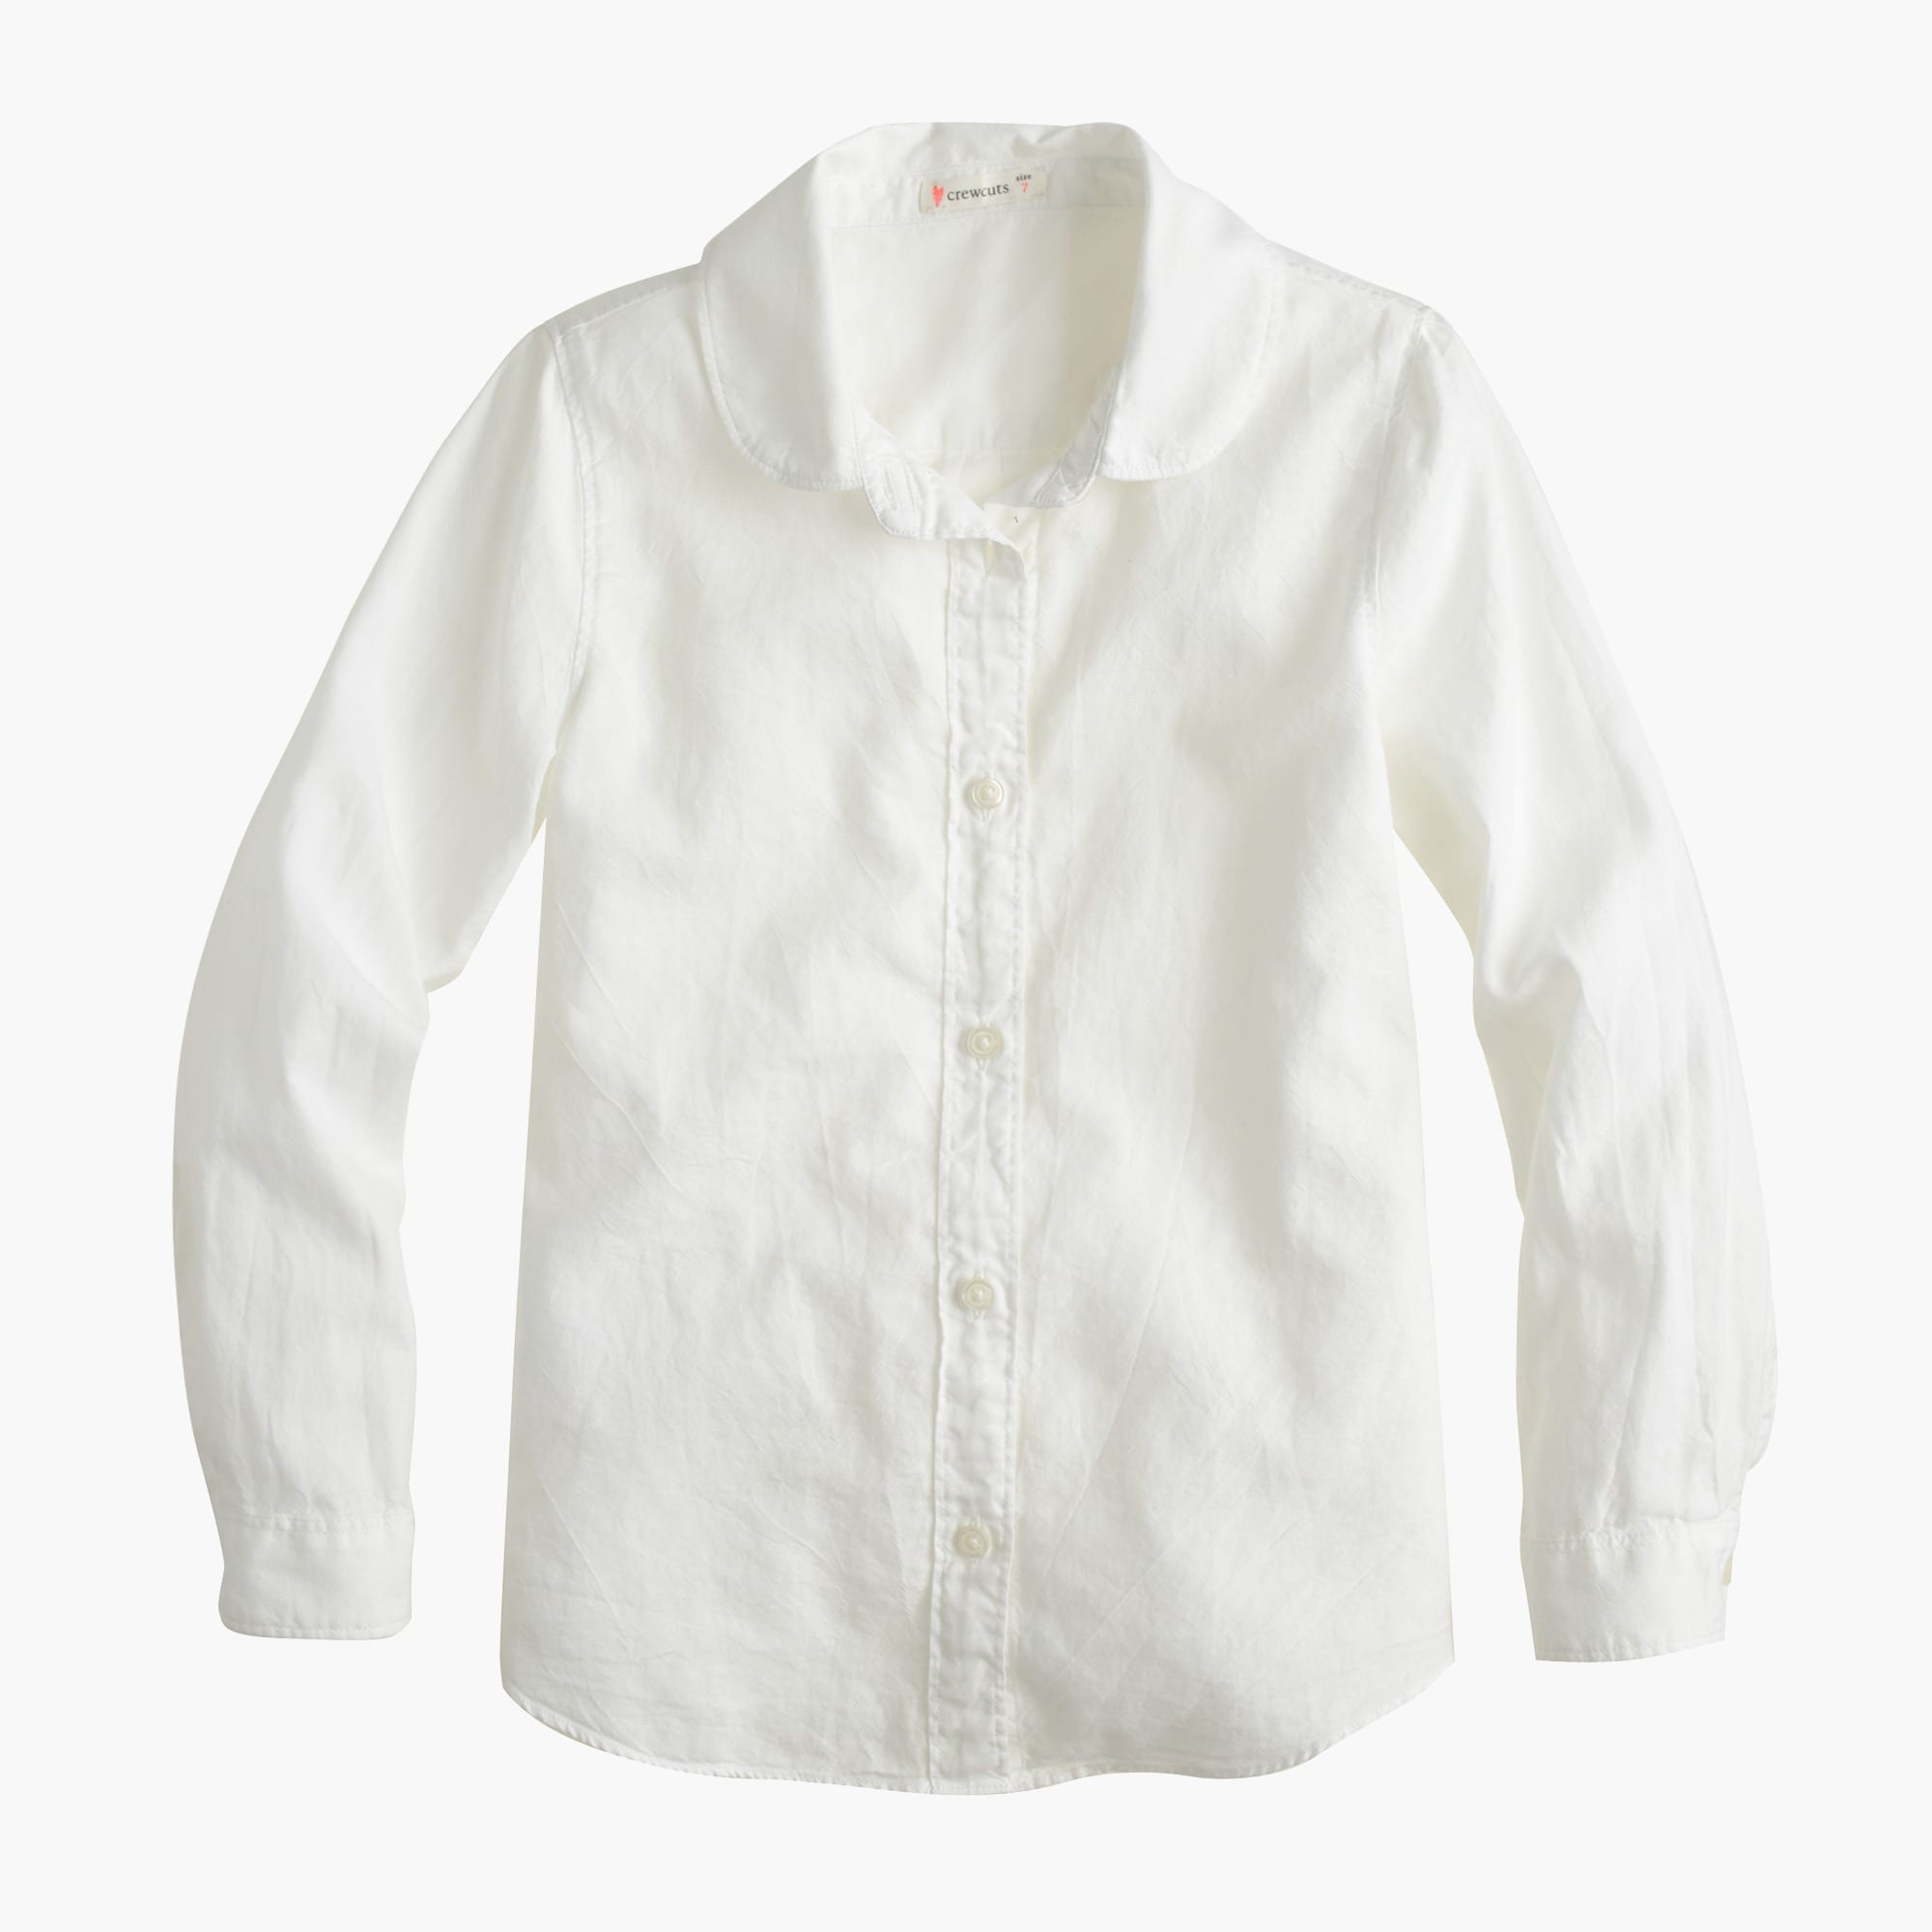 Image 1 for Girls' Wendy shirt in tissue oxford cloth